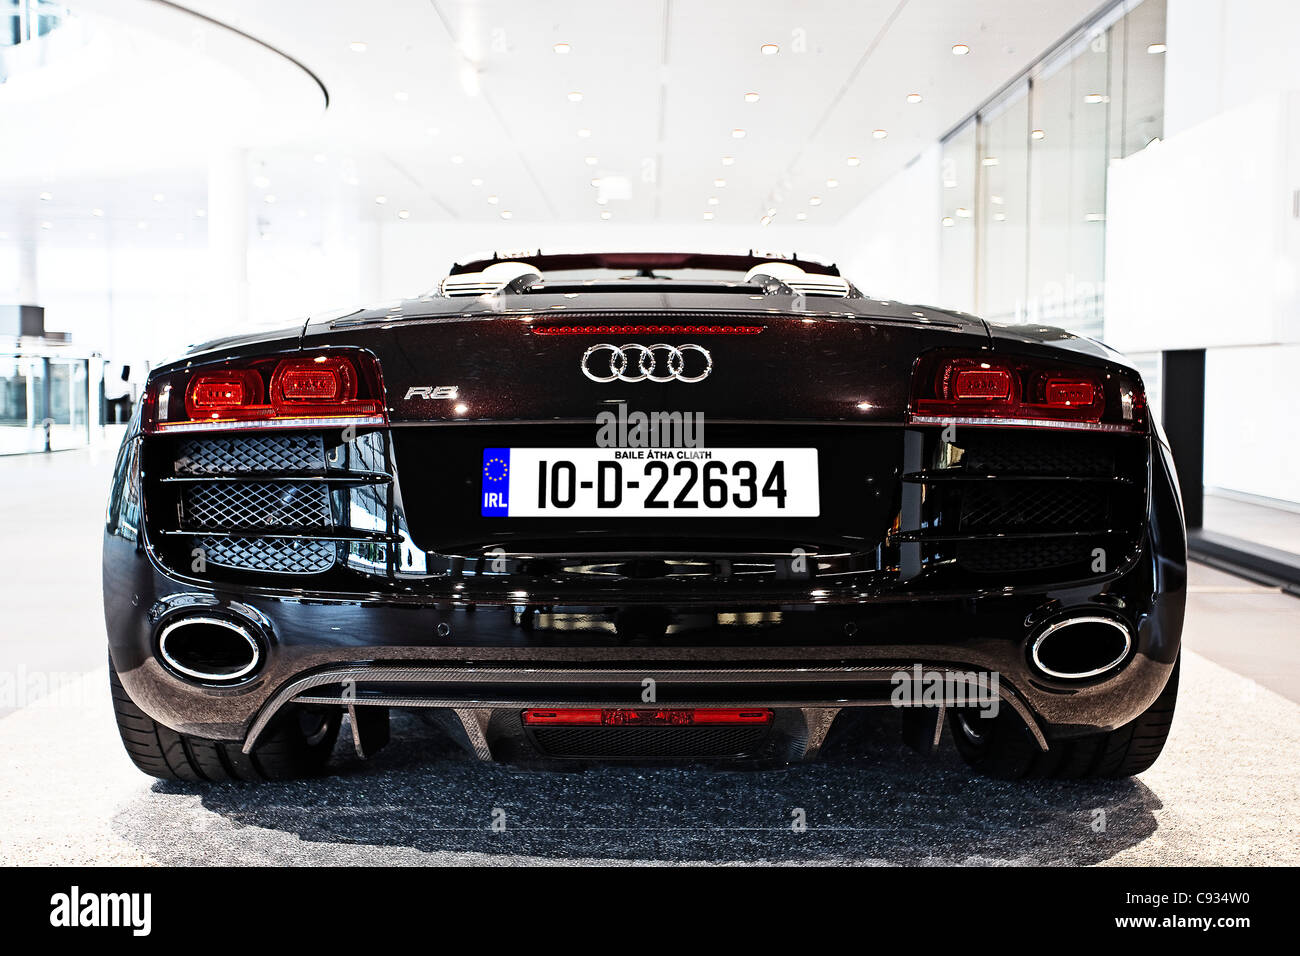 Rear View Of Audi R8 V10 Quattro Super Sports Car In The Audi Forum In  Neckarslum